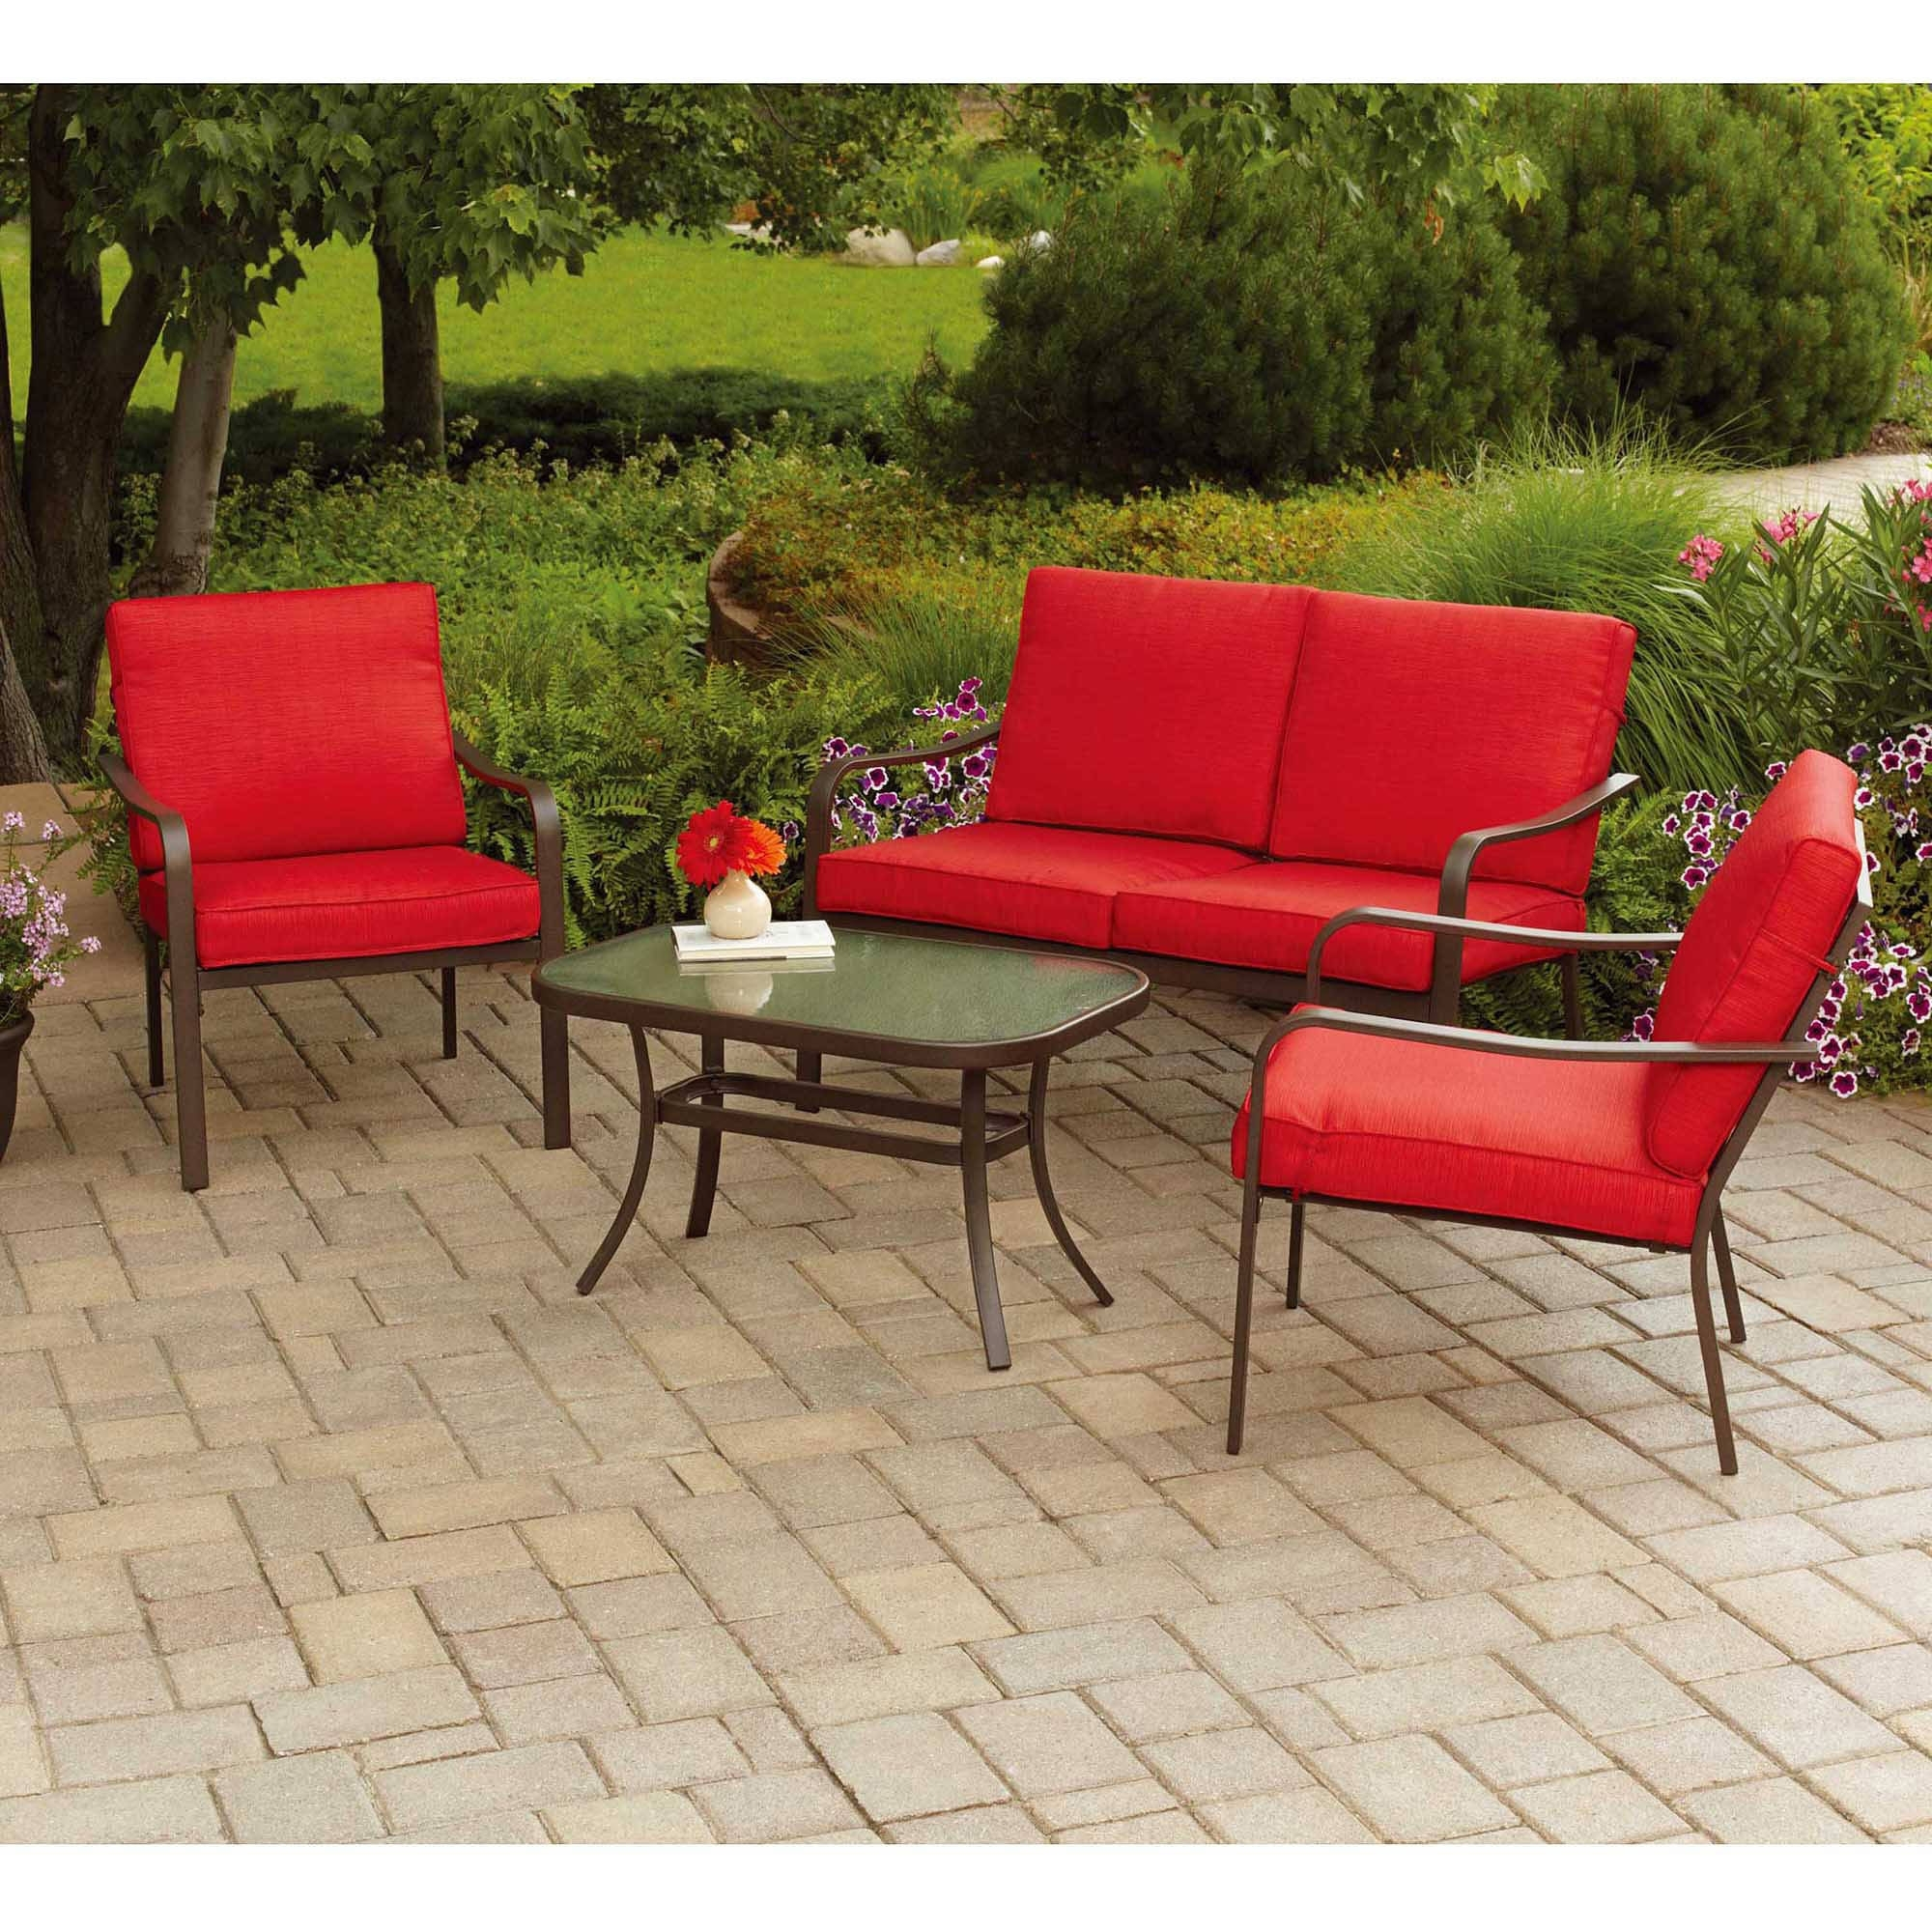 Most Recent Mainstays Stanton Cushioned 4 Piece Patio Conversation Set, Seats 4 Throughout 4 Piece Patio Conversation Sets (View 7 of 15)